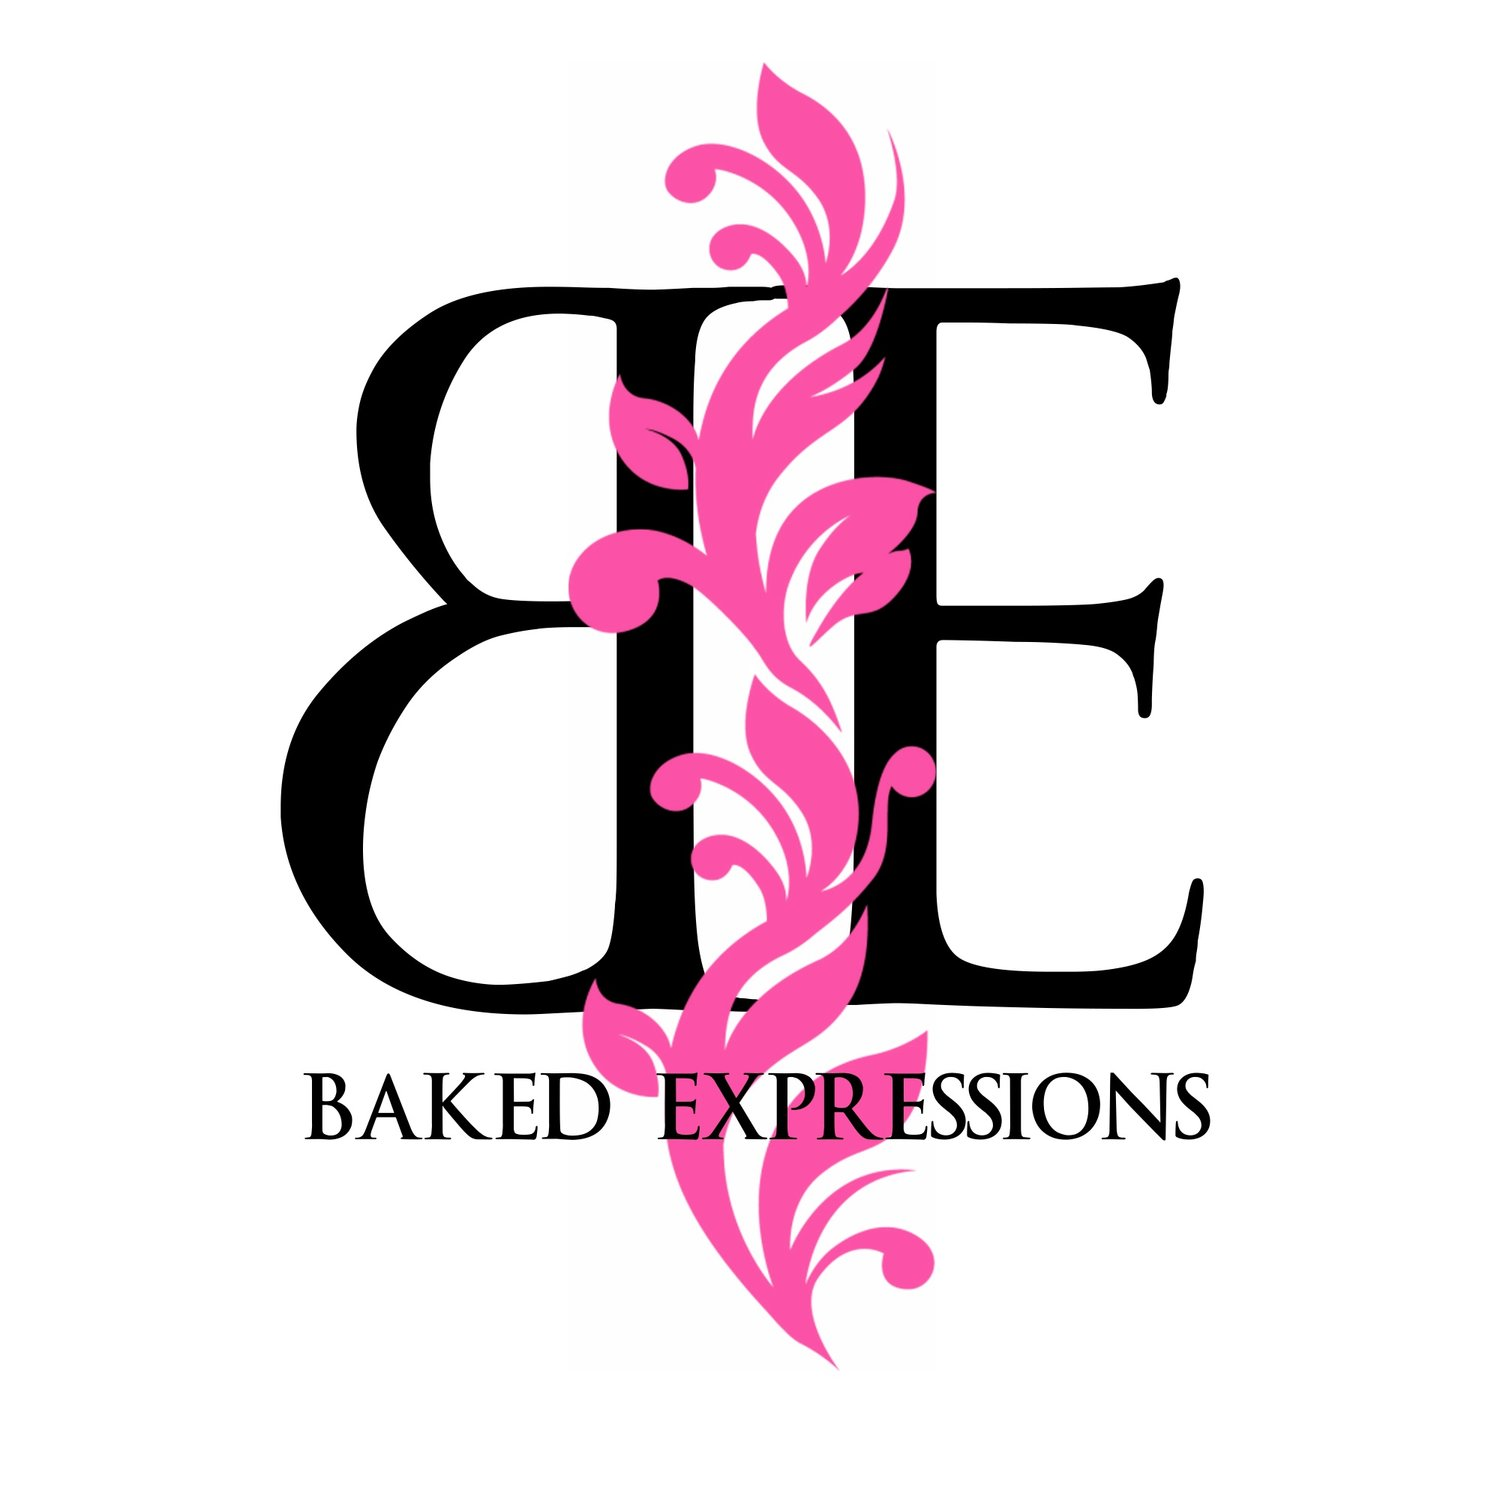 Baked Expressions